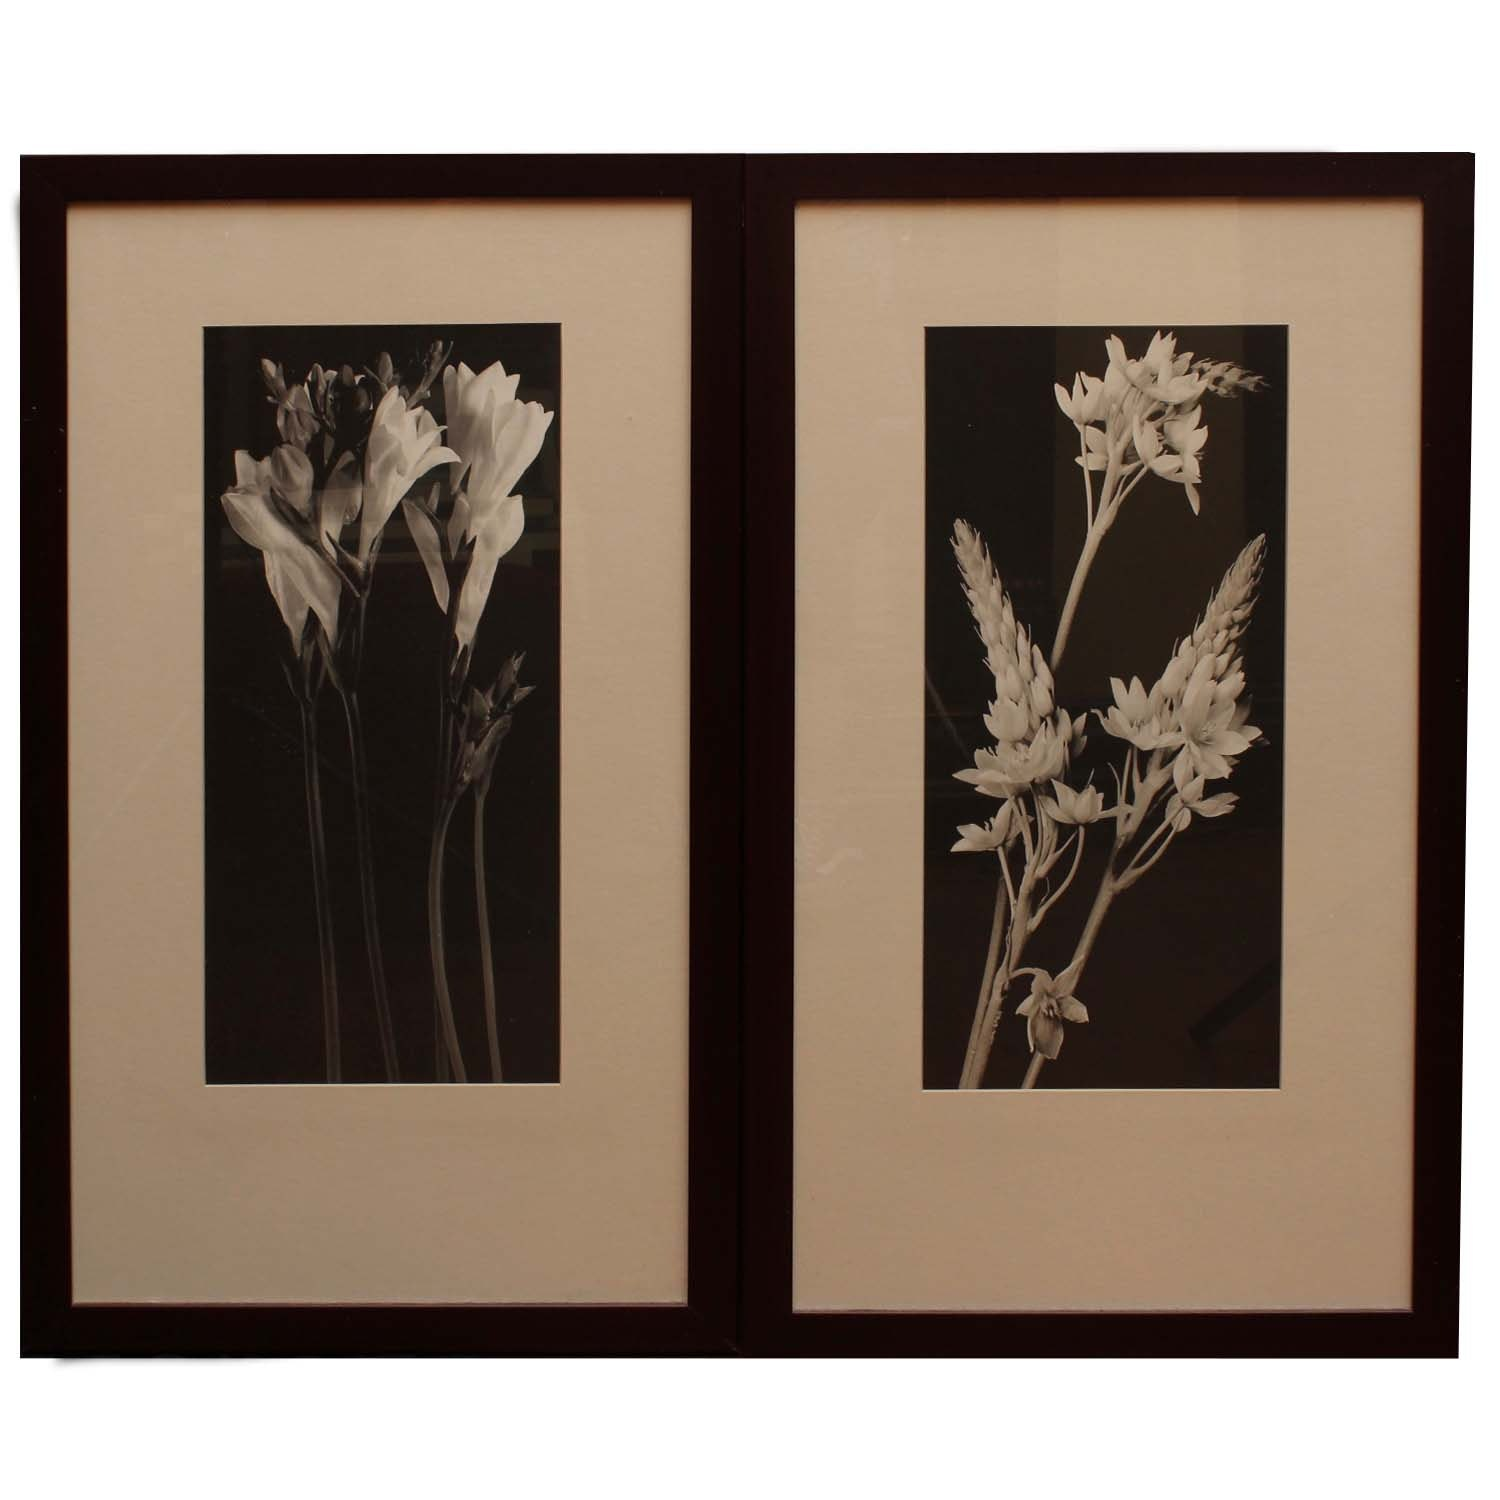 Two New Century Black and White Flower Photographs